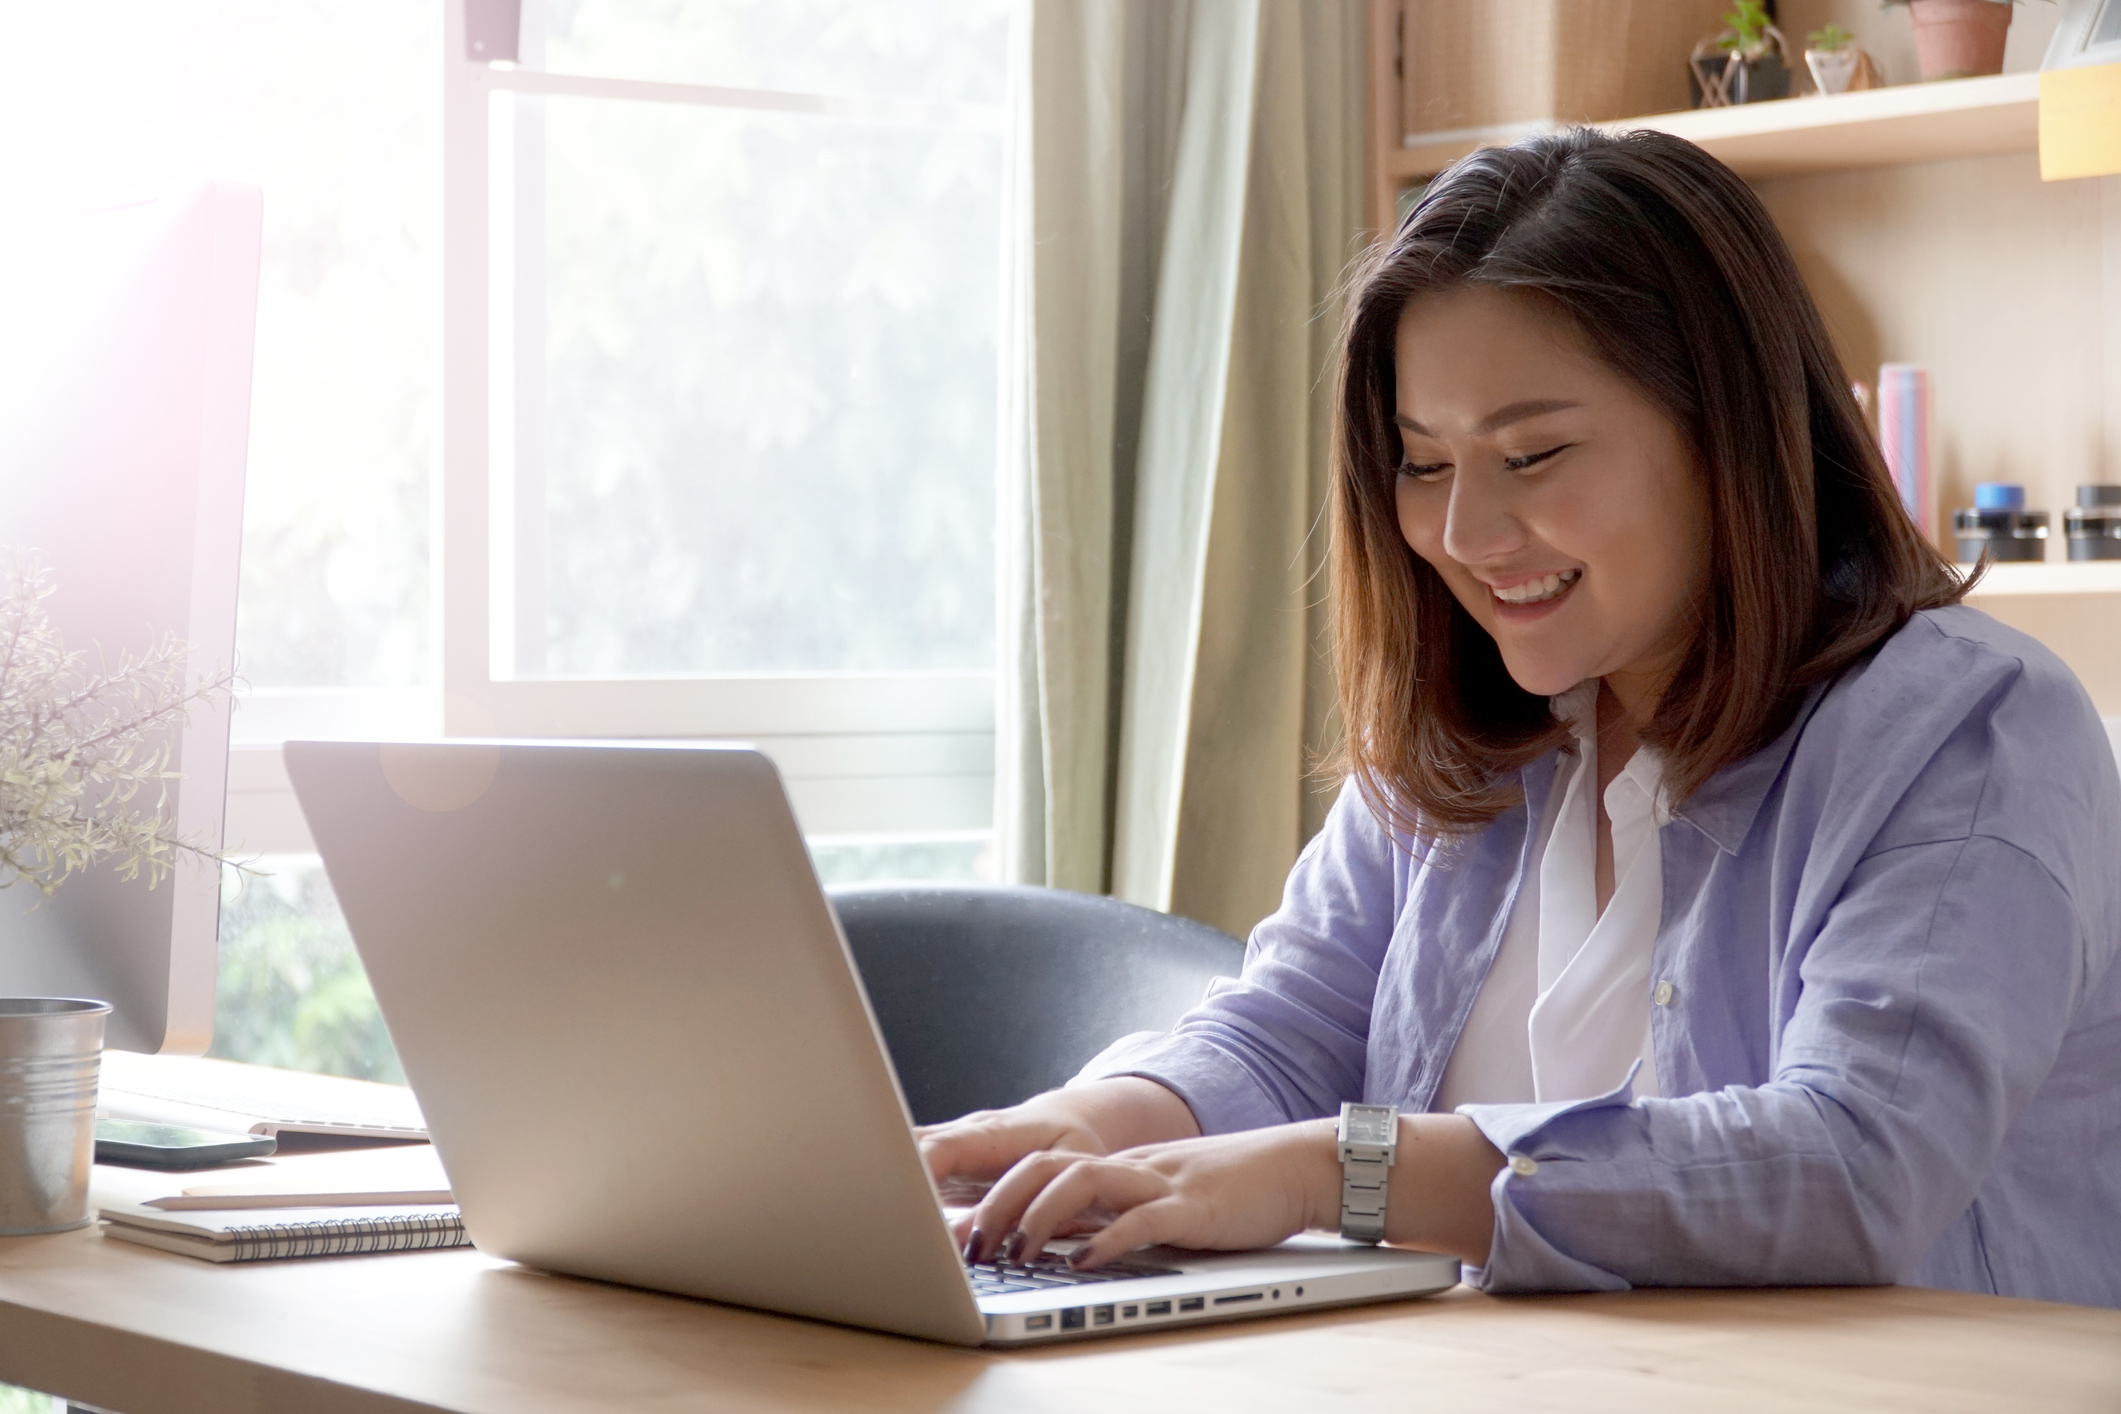 Stock photo of woman at laptop, smiling